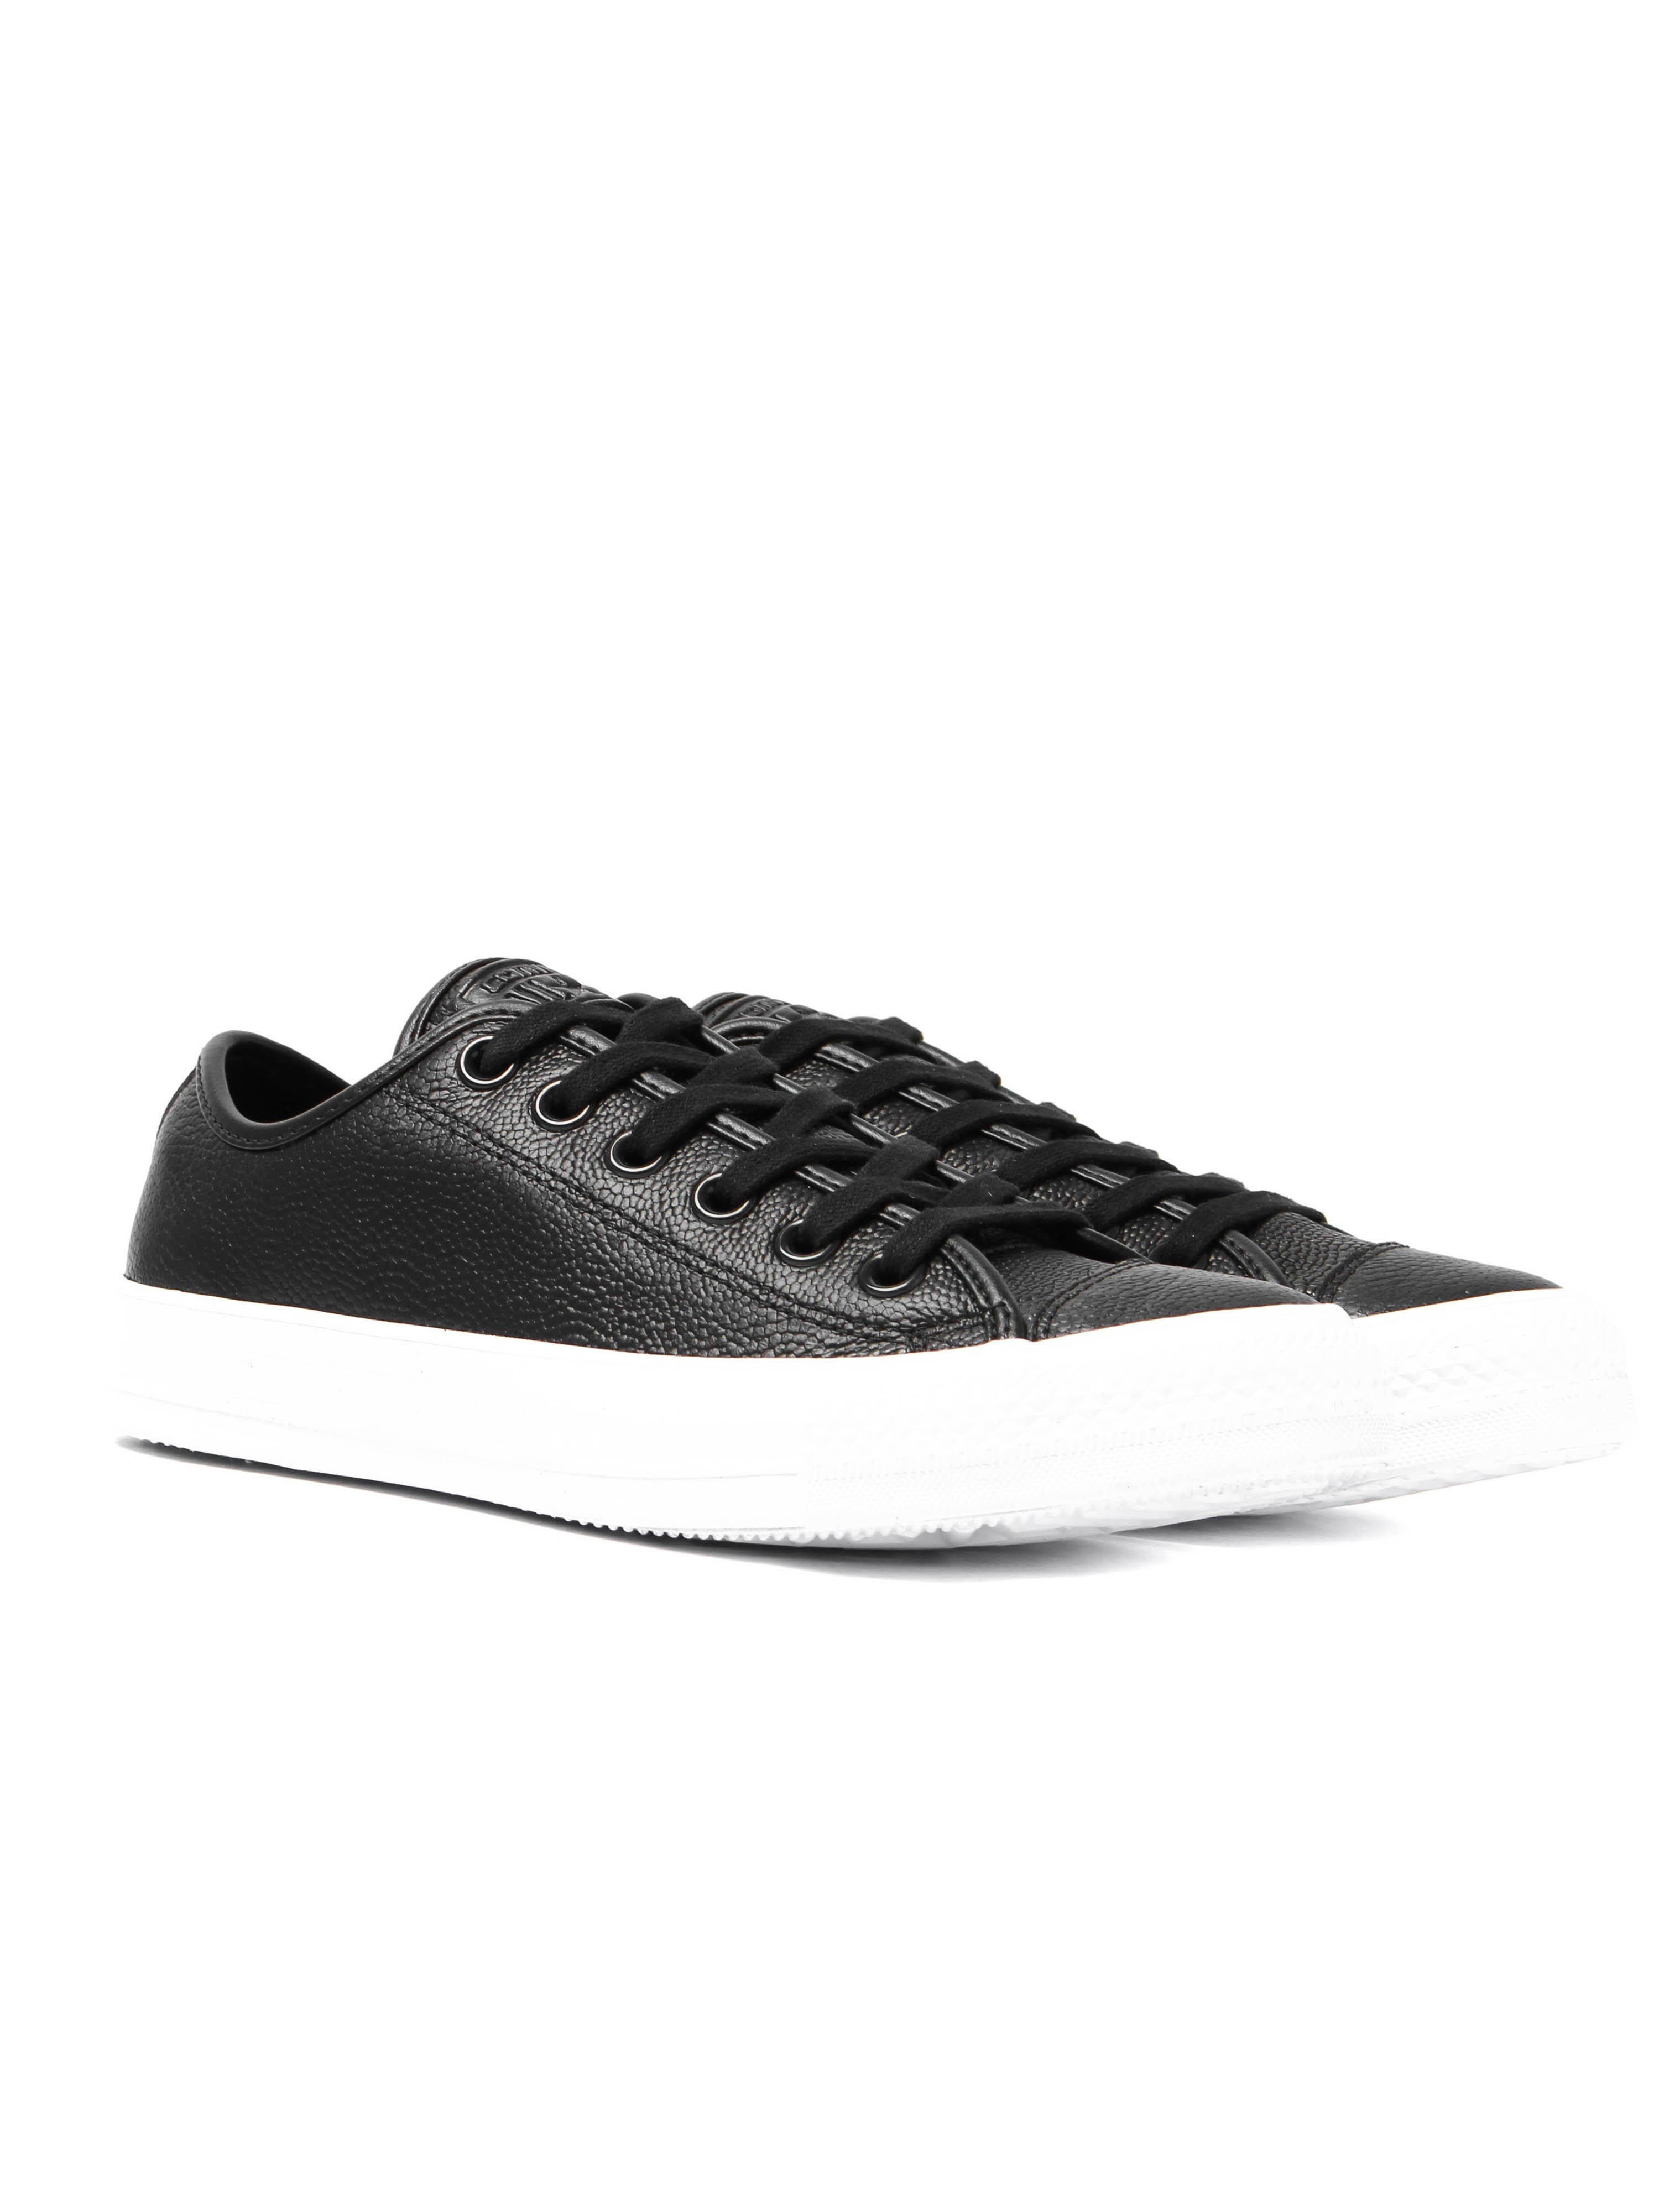 Converse Women's Chuck Taylor All Star Ox Trainers - Black